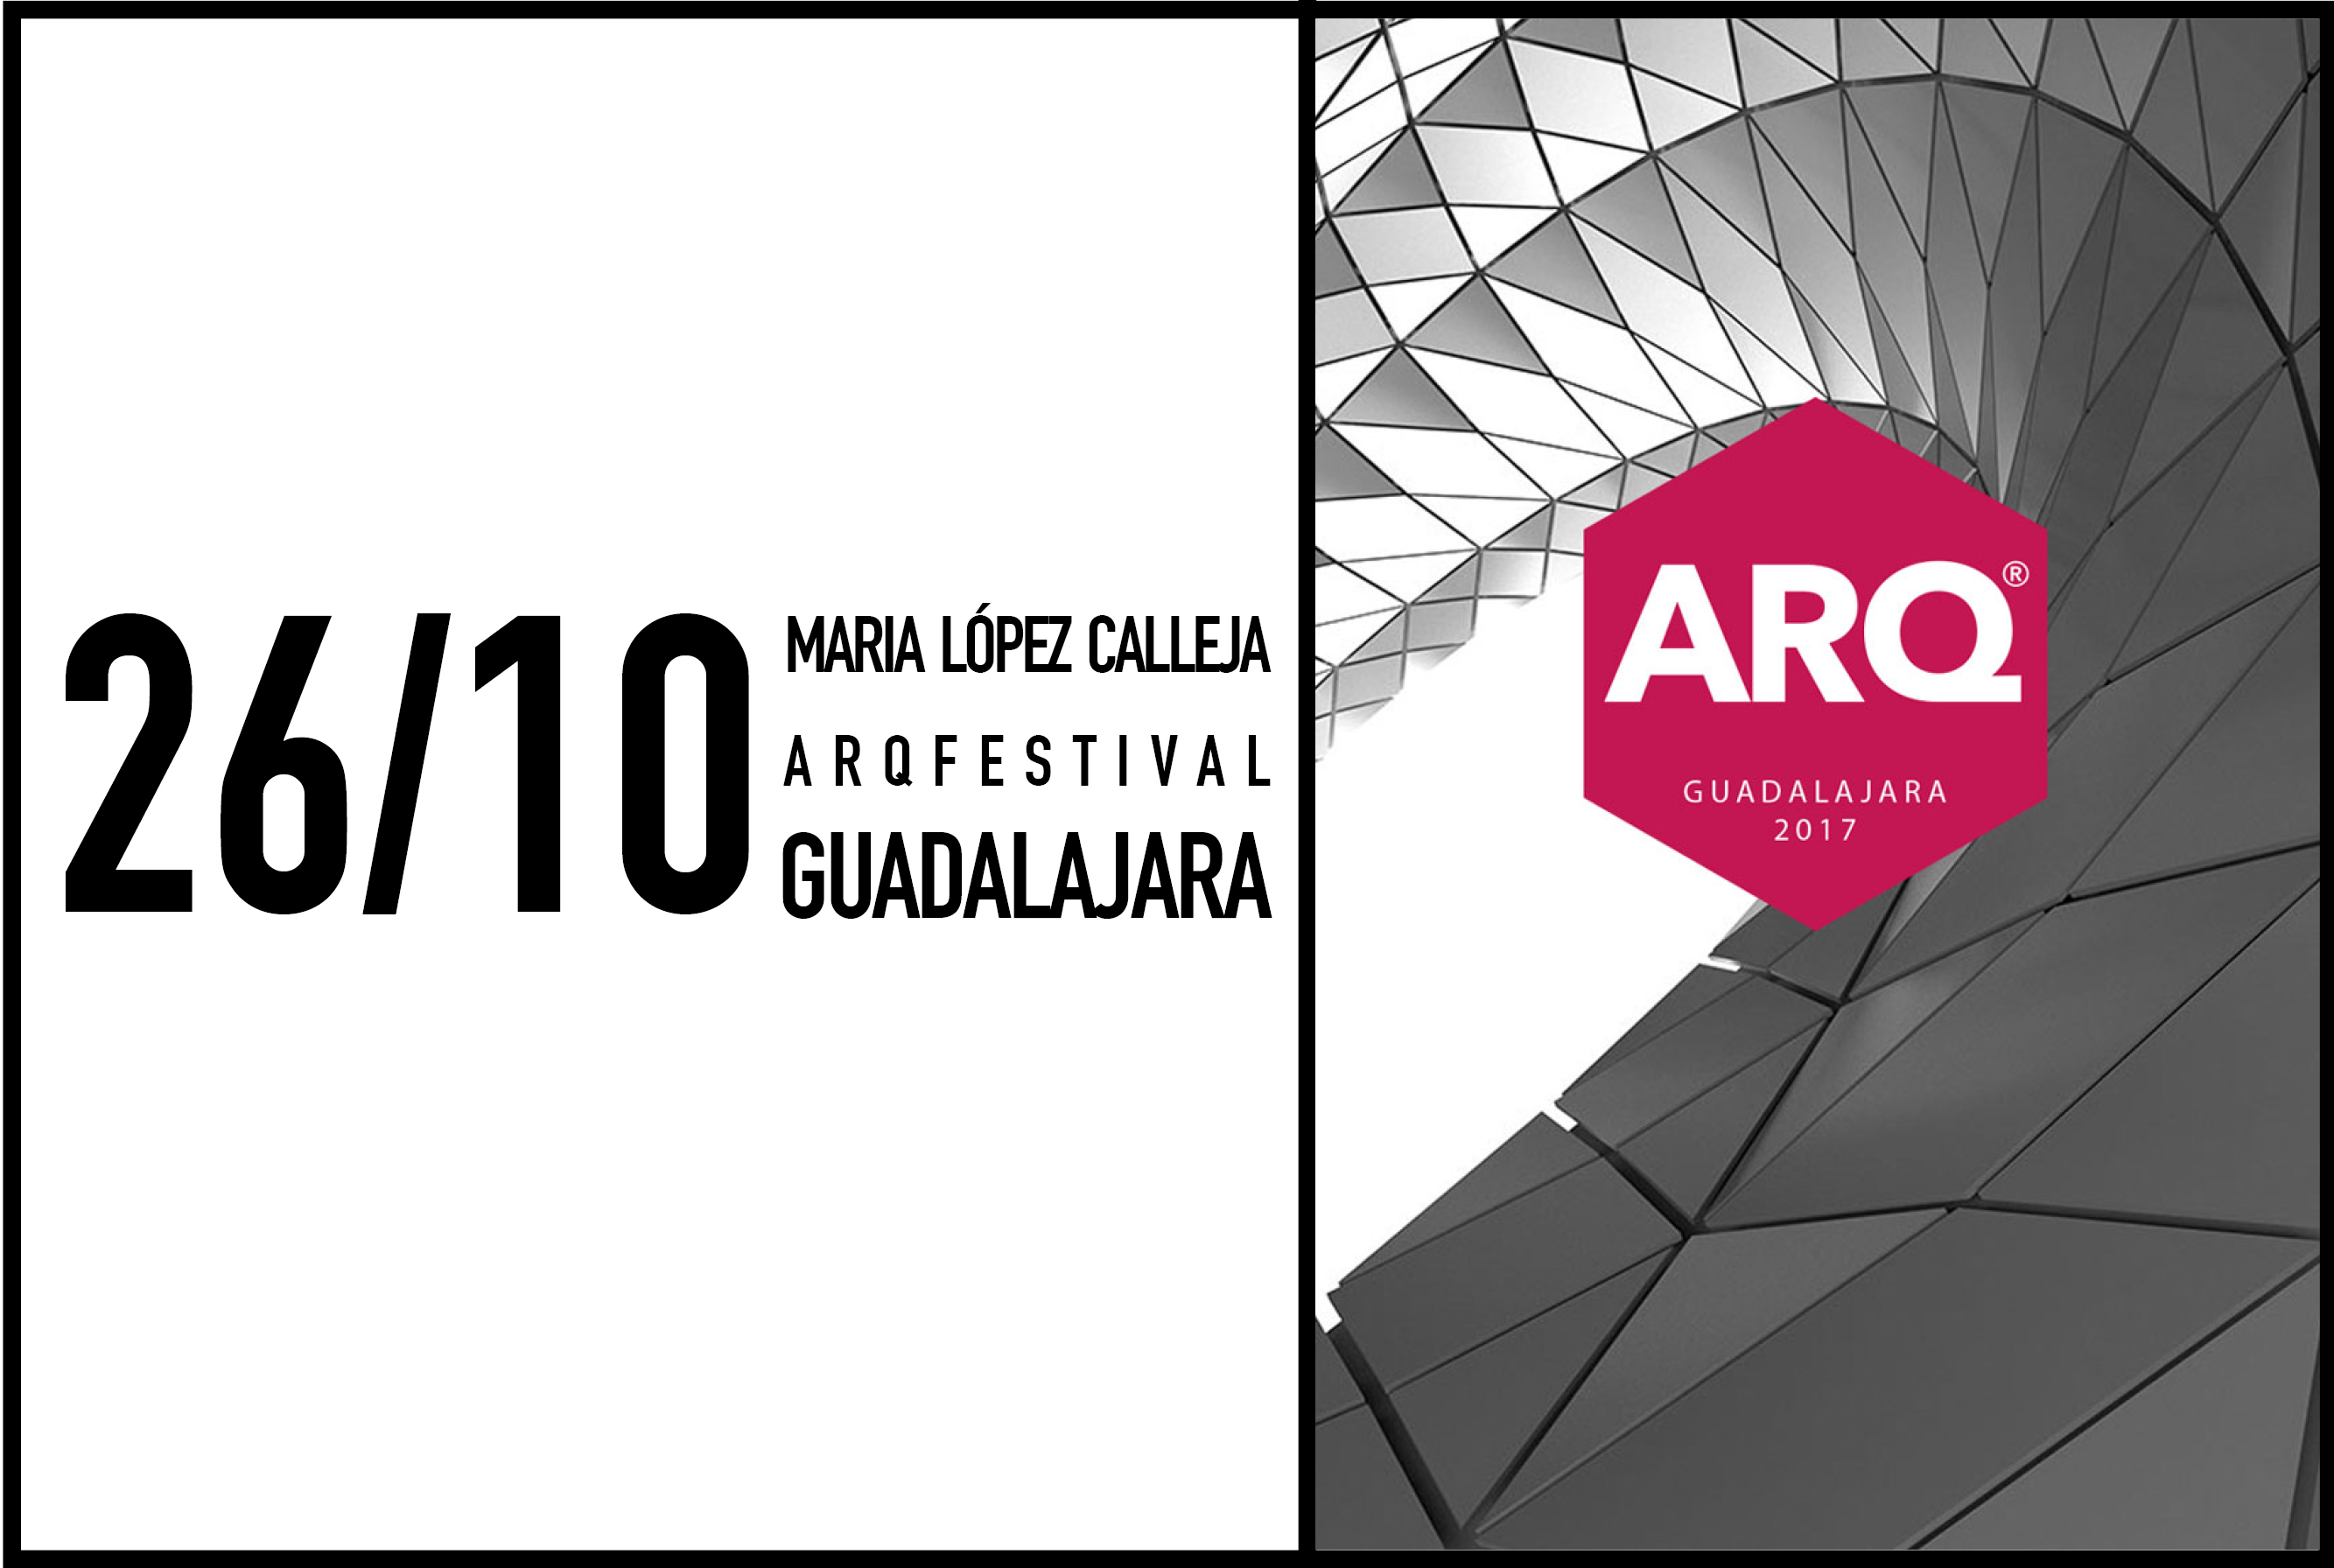 Maria López calleja to be speaking at arq festival in guadalajara, Mexico, October 26 2017